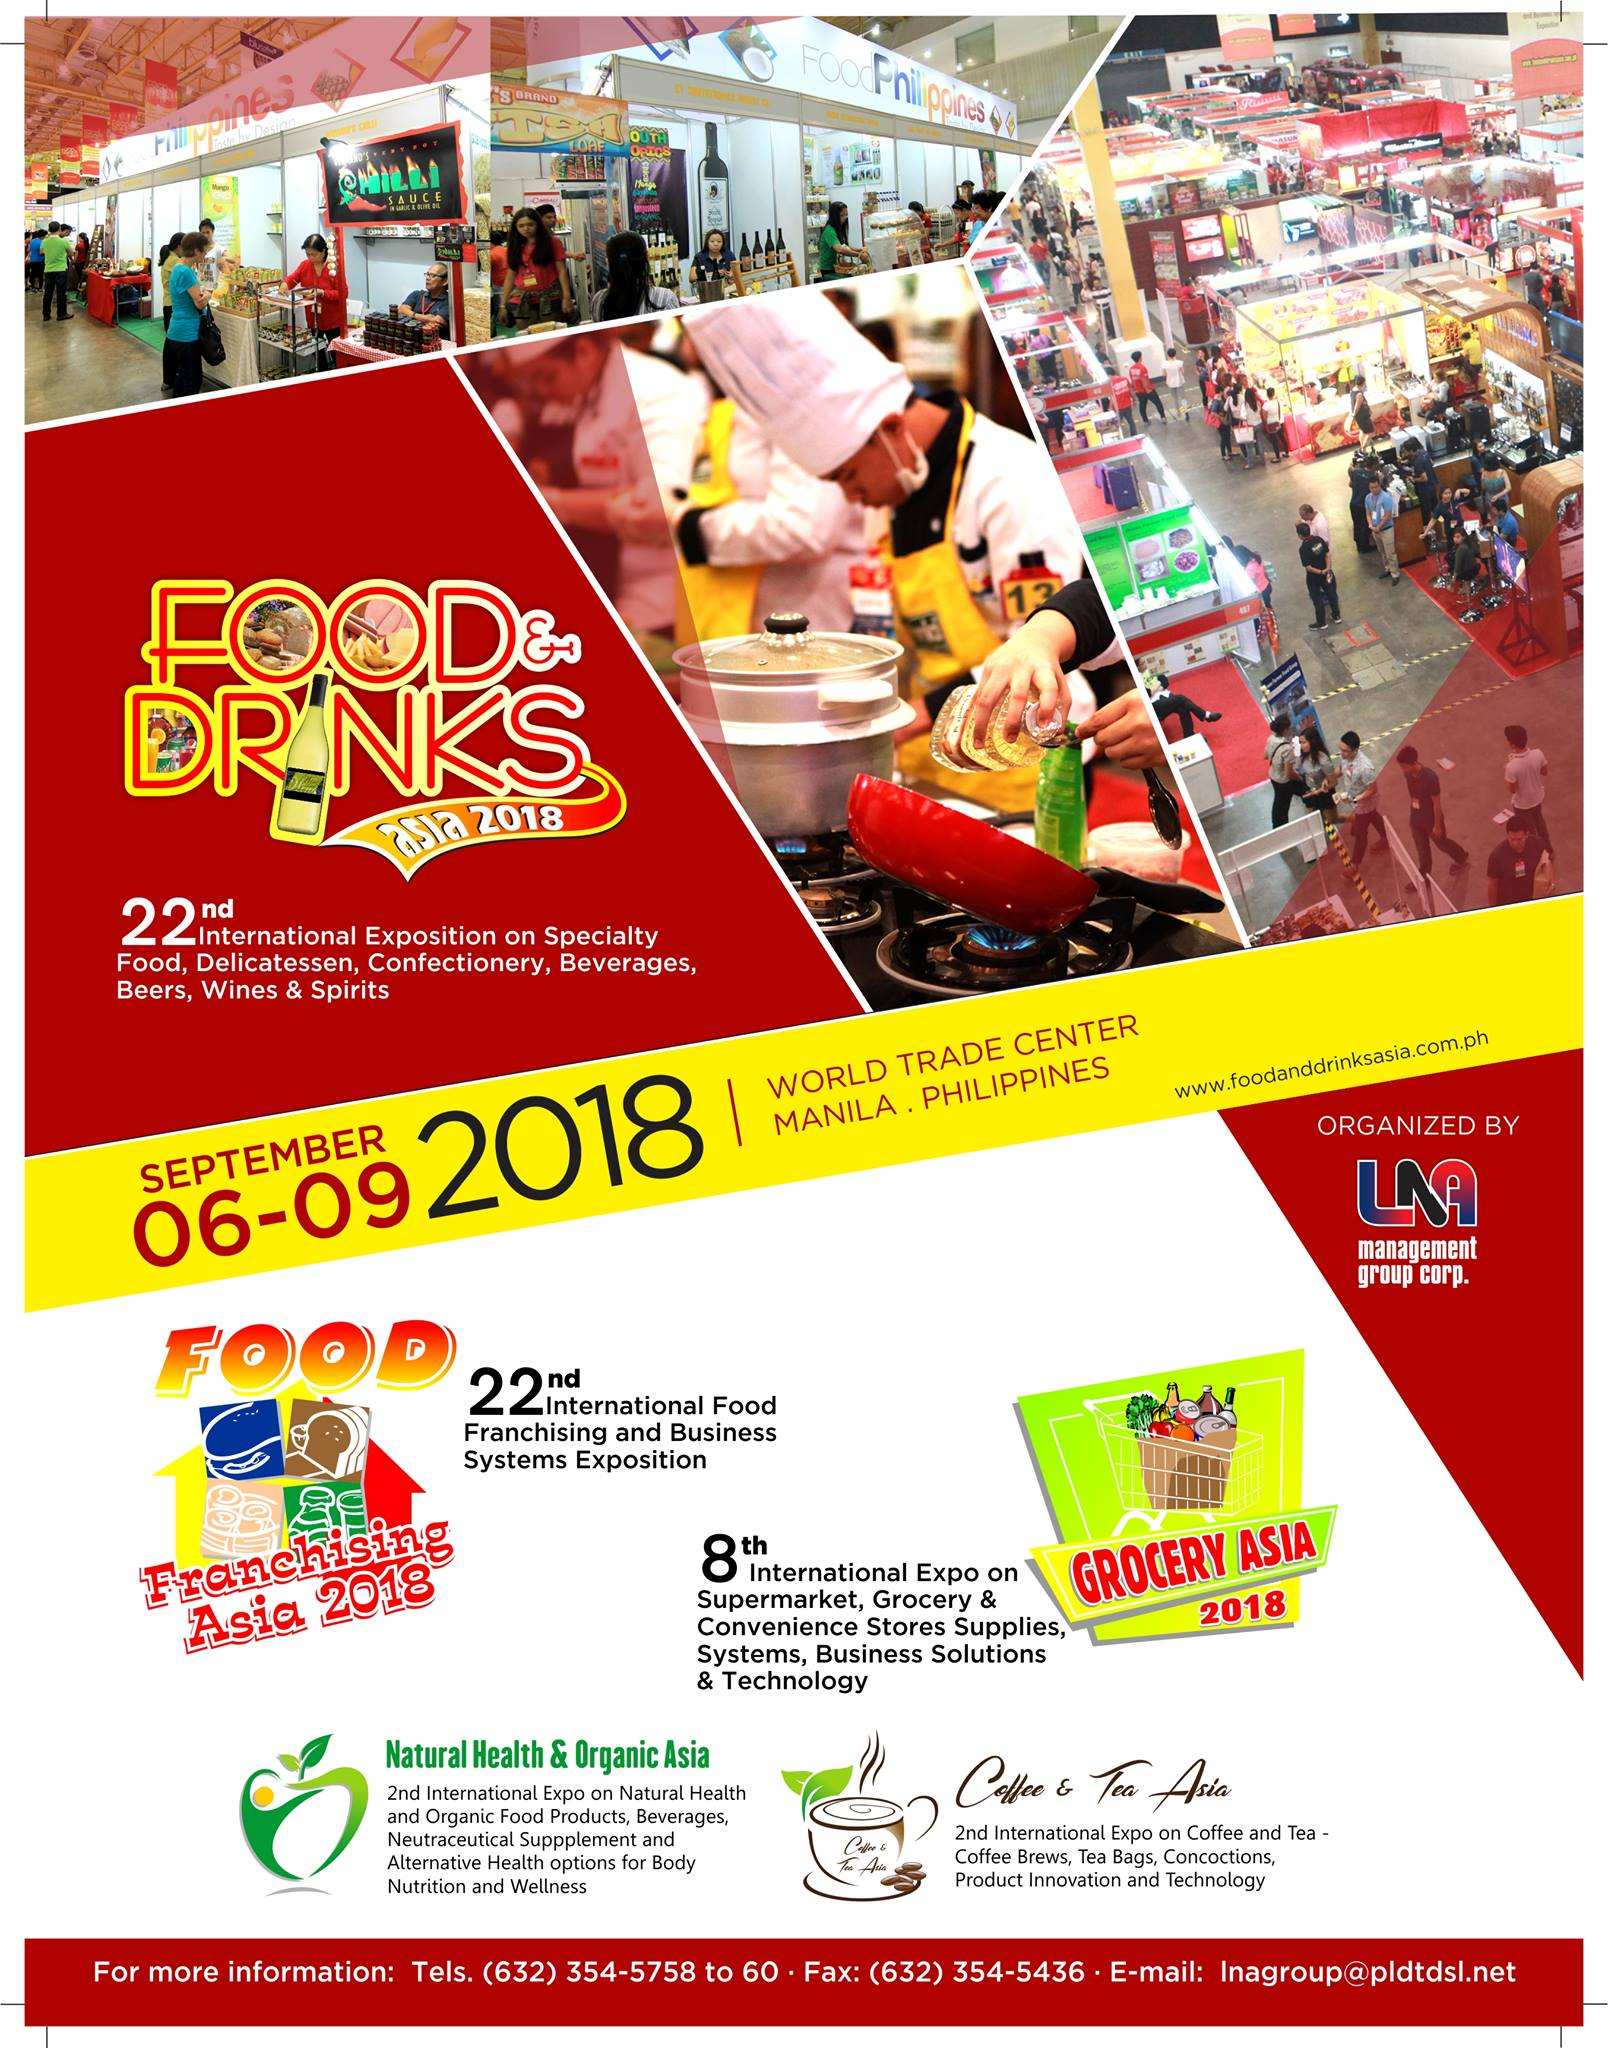 Food and drinks asia 2018 philippine primer rejoice as food and drinks asia rolls off the red carpet for their biggest event of the year this september 6 to 9 at the world trade center manila gumiabroncs Image collections